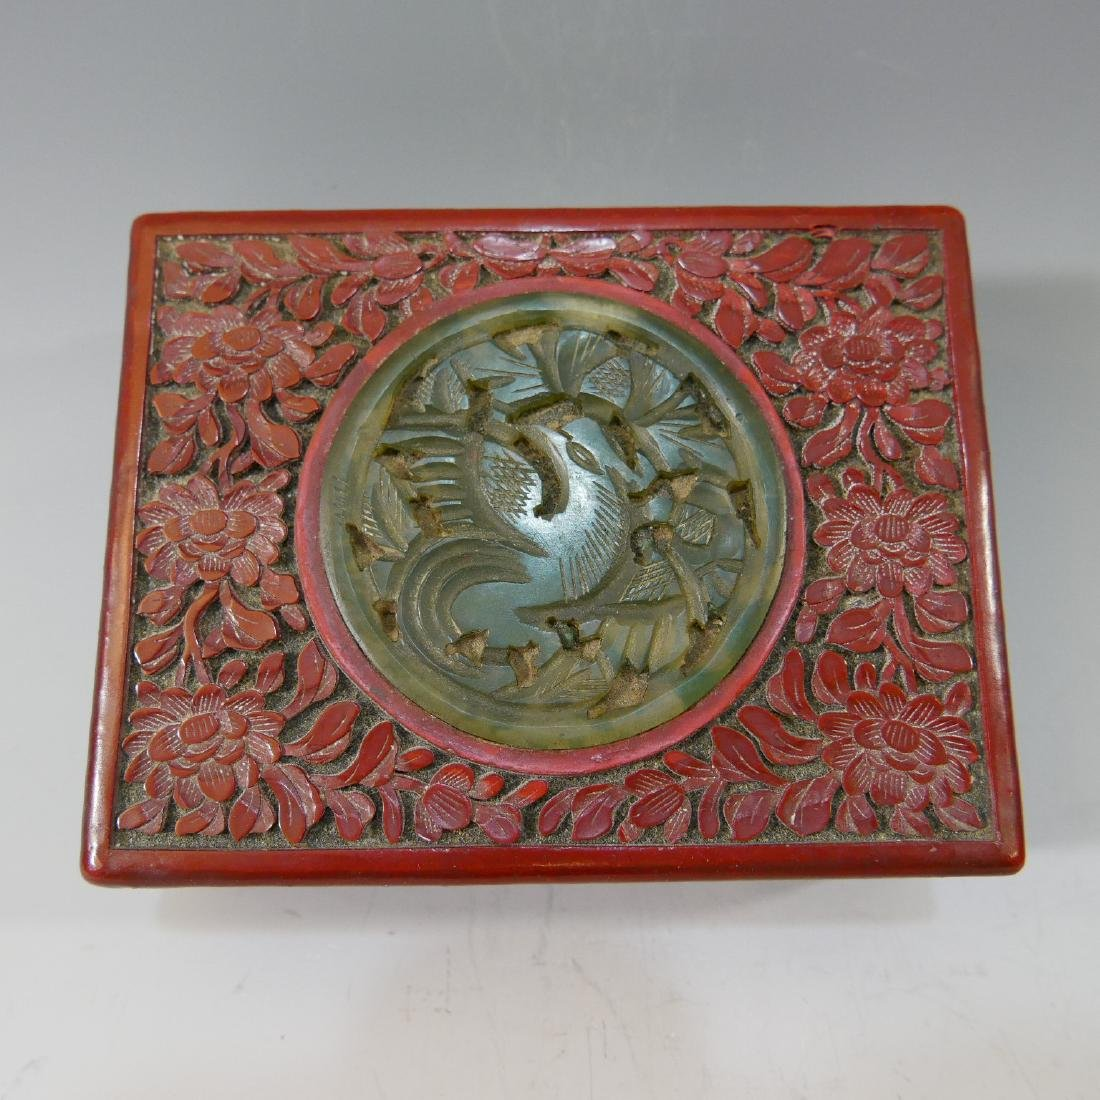 CHINESE ANTIQUE CARVED LACQUER CINNABAR BOX - 19TH - 2